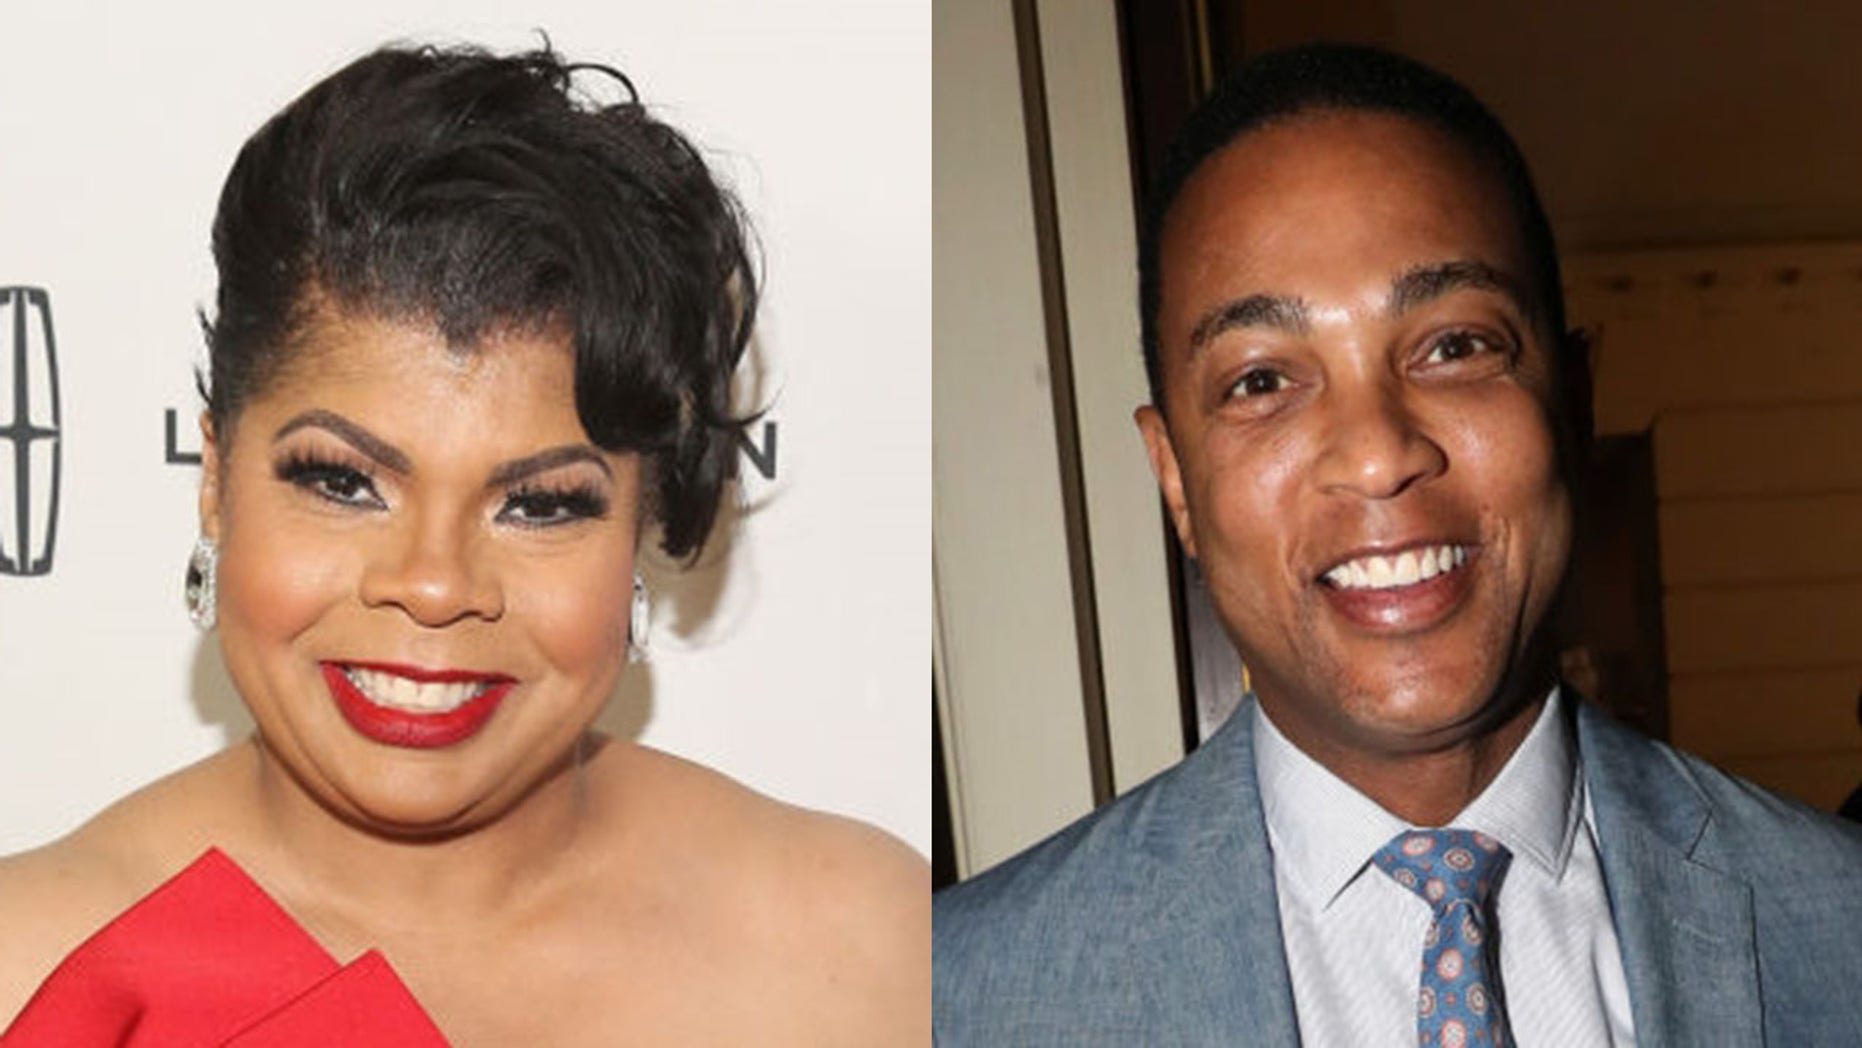 CNN contributor April Ryan yelled questions during Tuesday's press briefing and Don Lemon praised her for it.